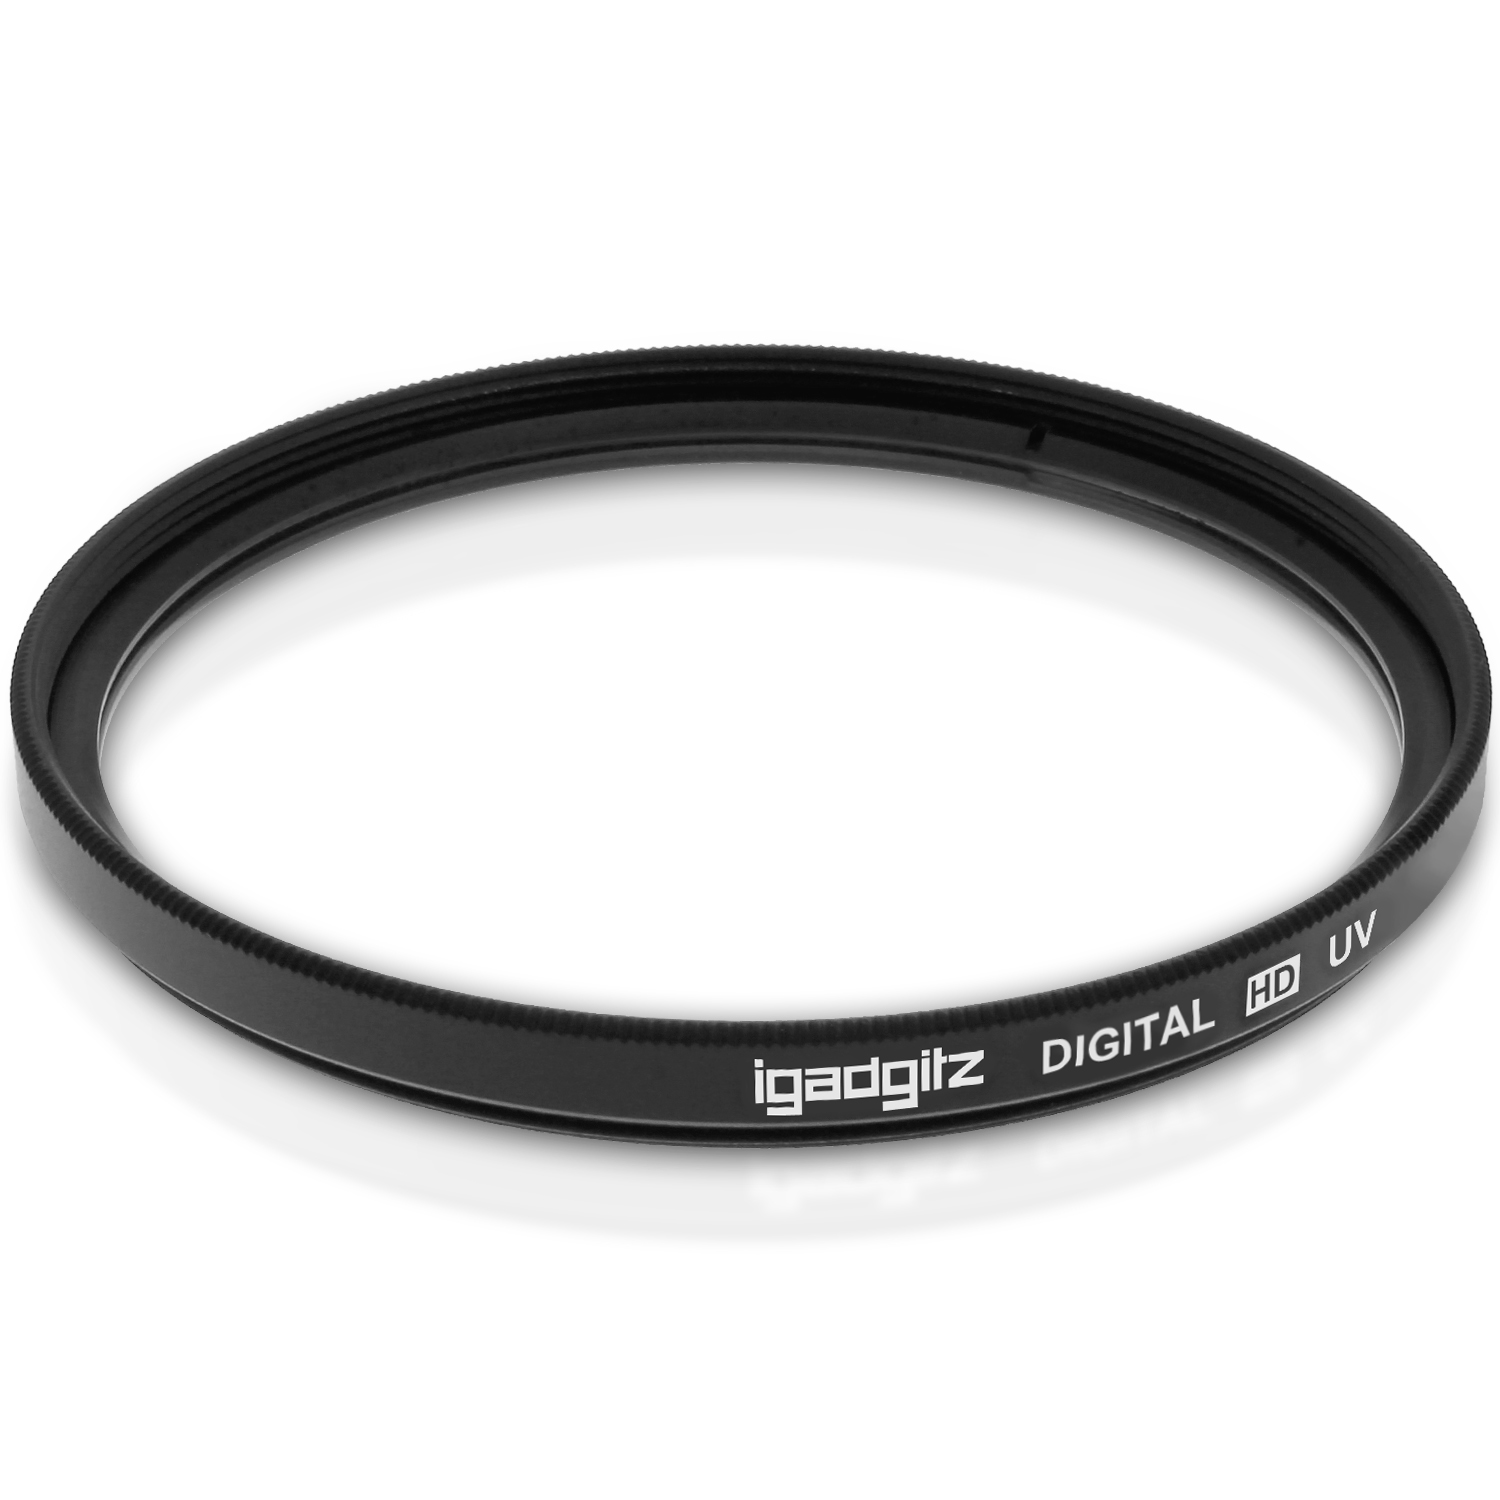 iGadgitz Xtra 58mm Glass Multi-Coated UV Lens Filter Protection for SLR & DSLR Cameras